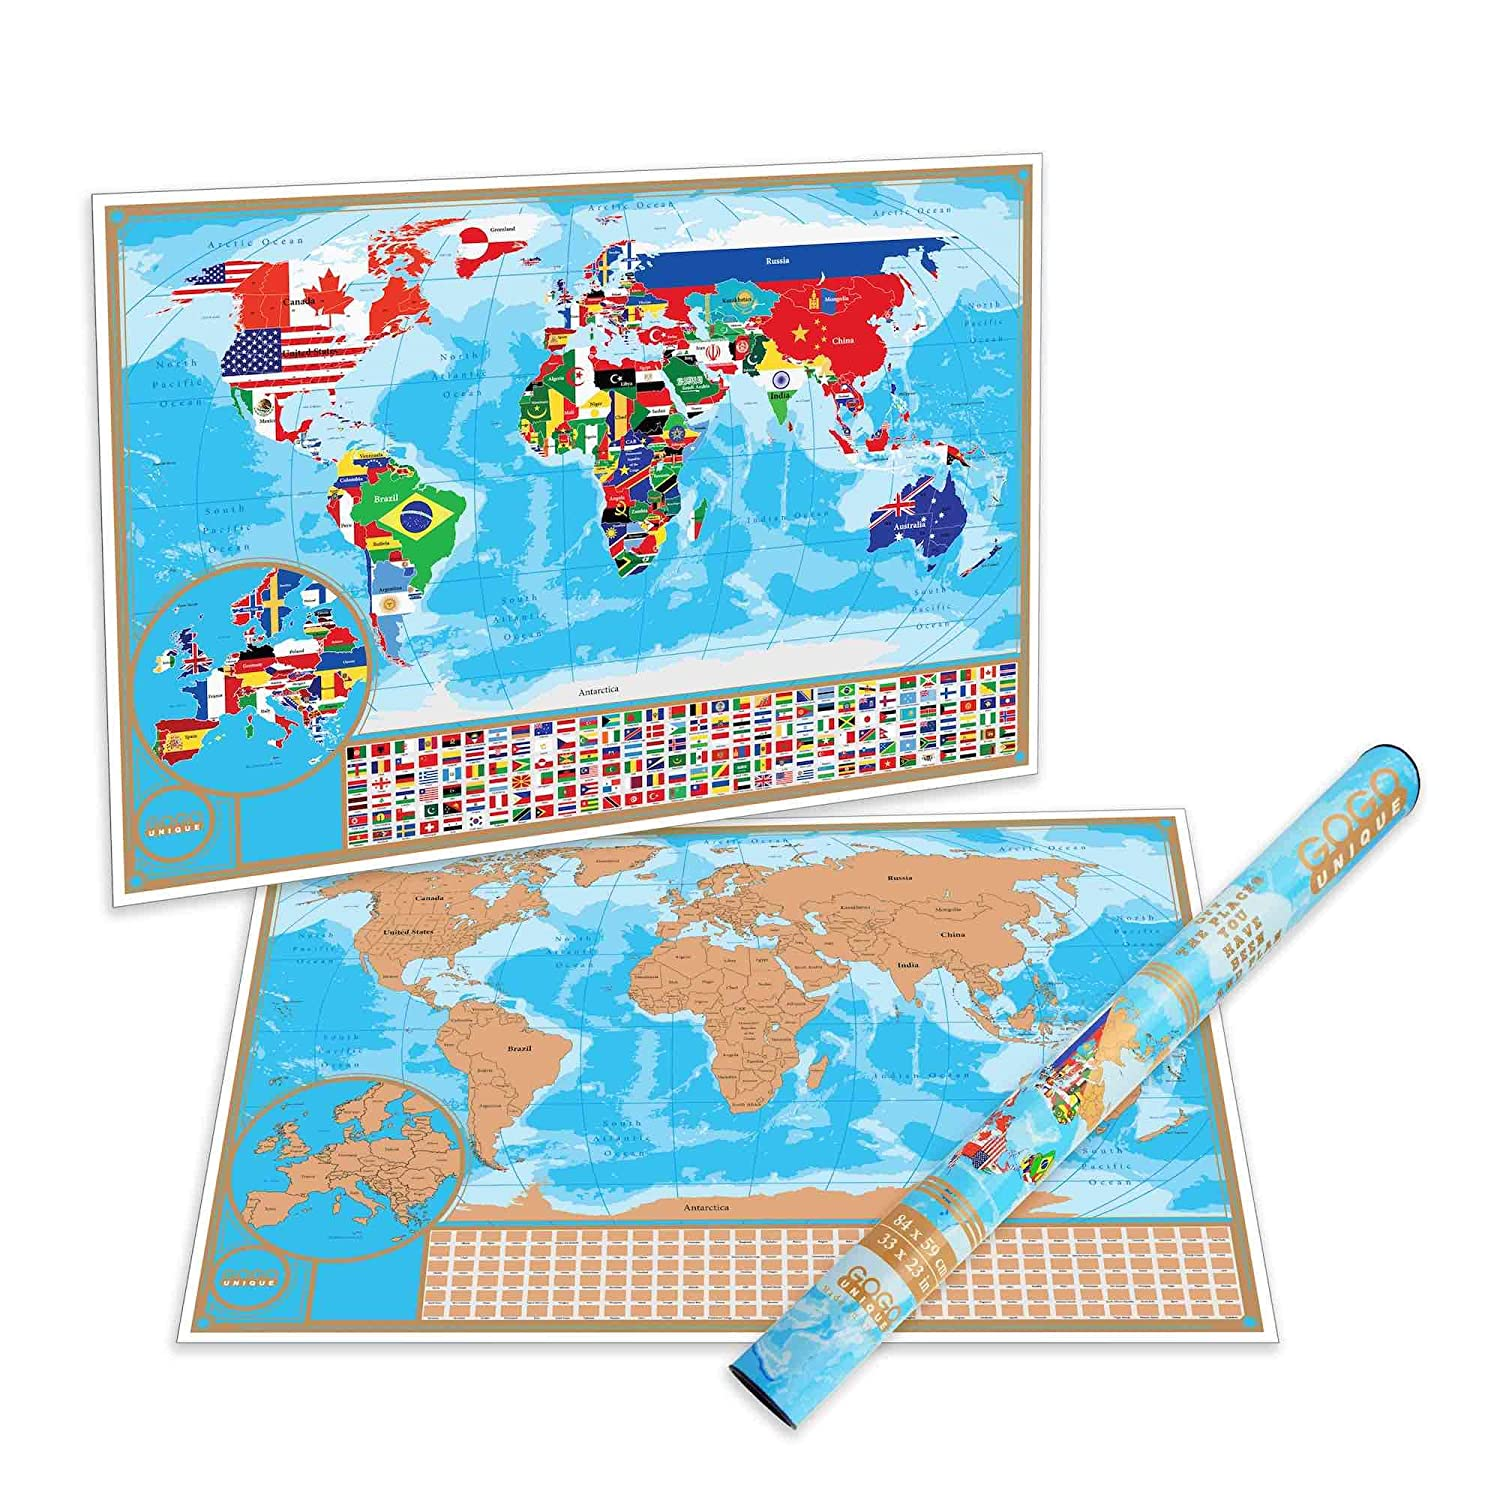 Australia Map In Europe.Scratch Off Map Of The World With Flags Detailed Us States And Europe Map World Scratch Off Poster Is A Perfect Present For Travelers Premium